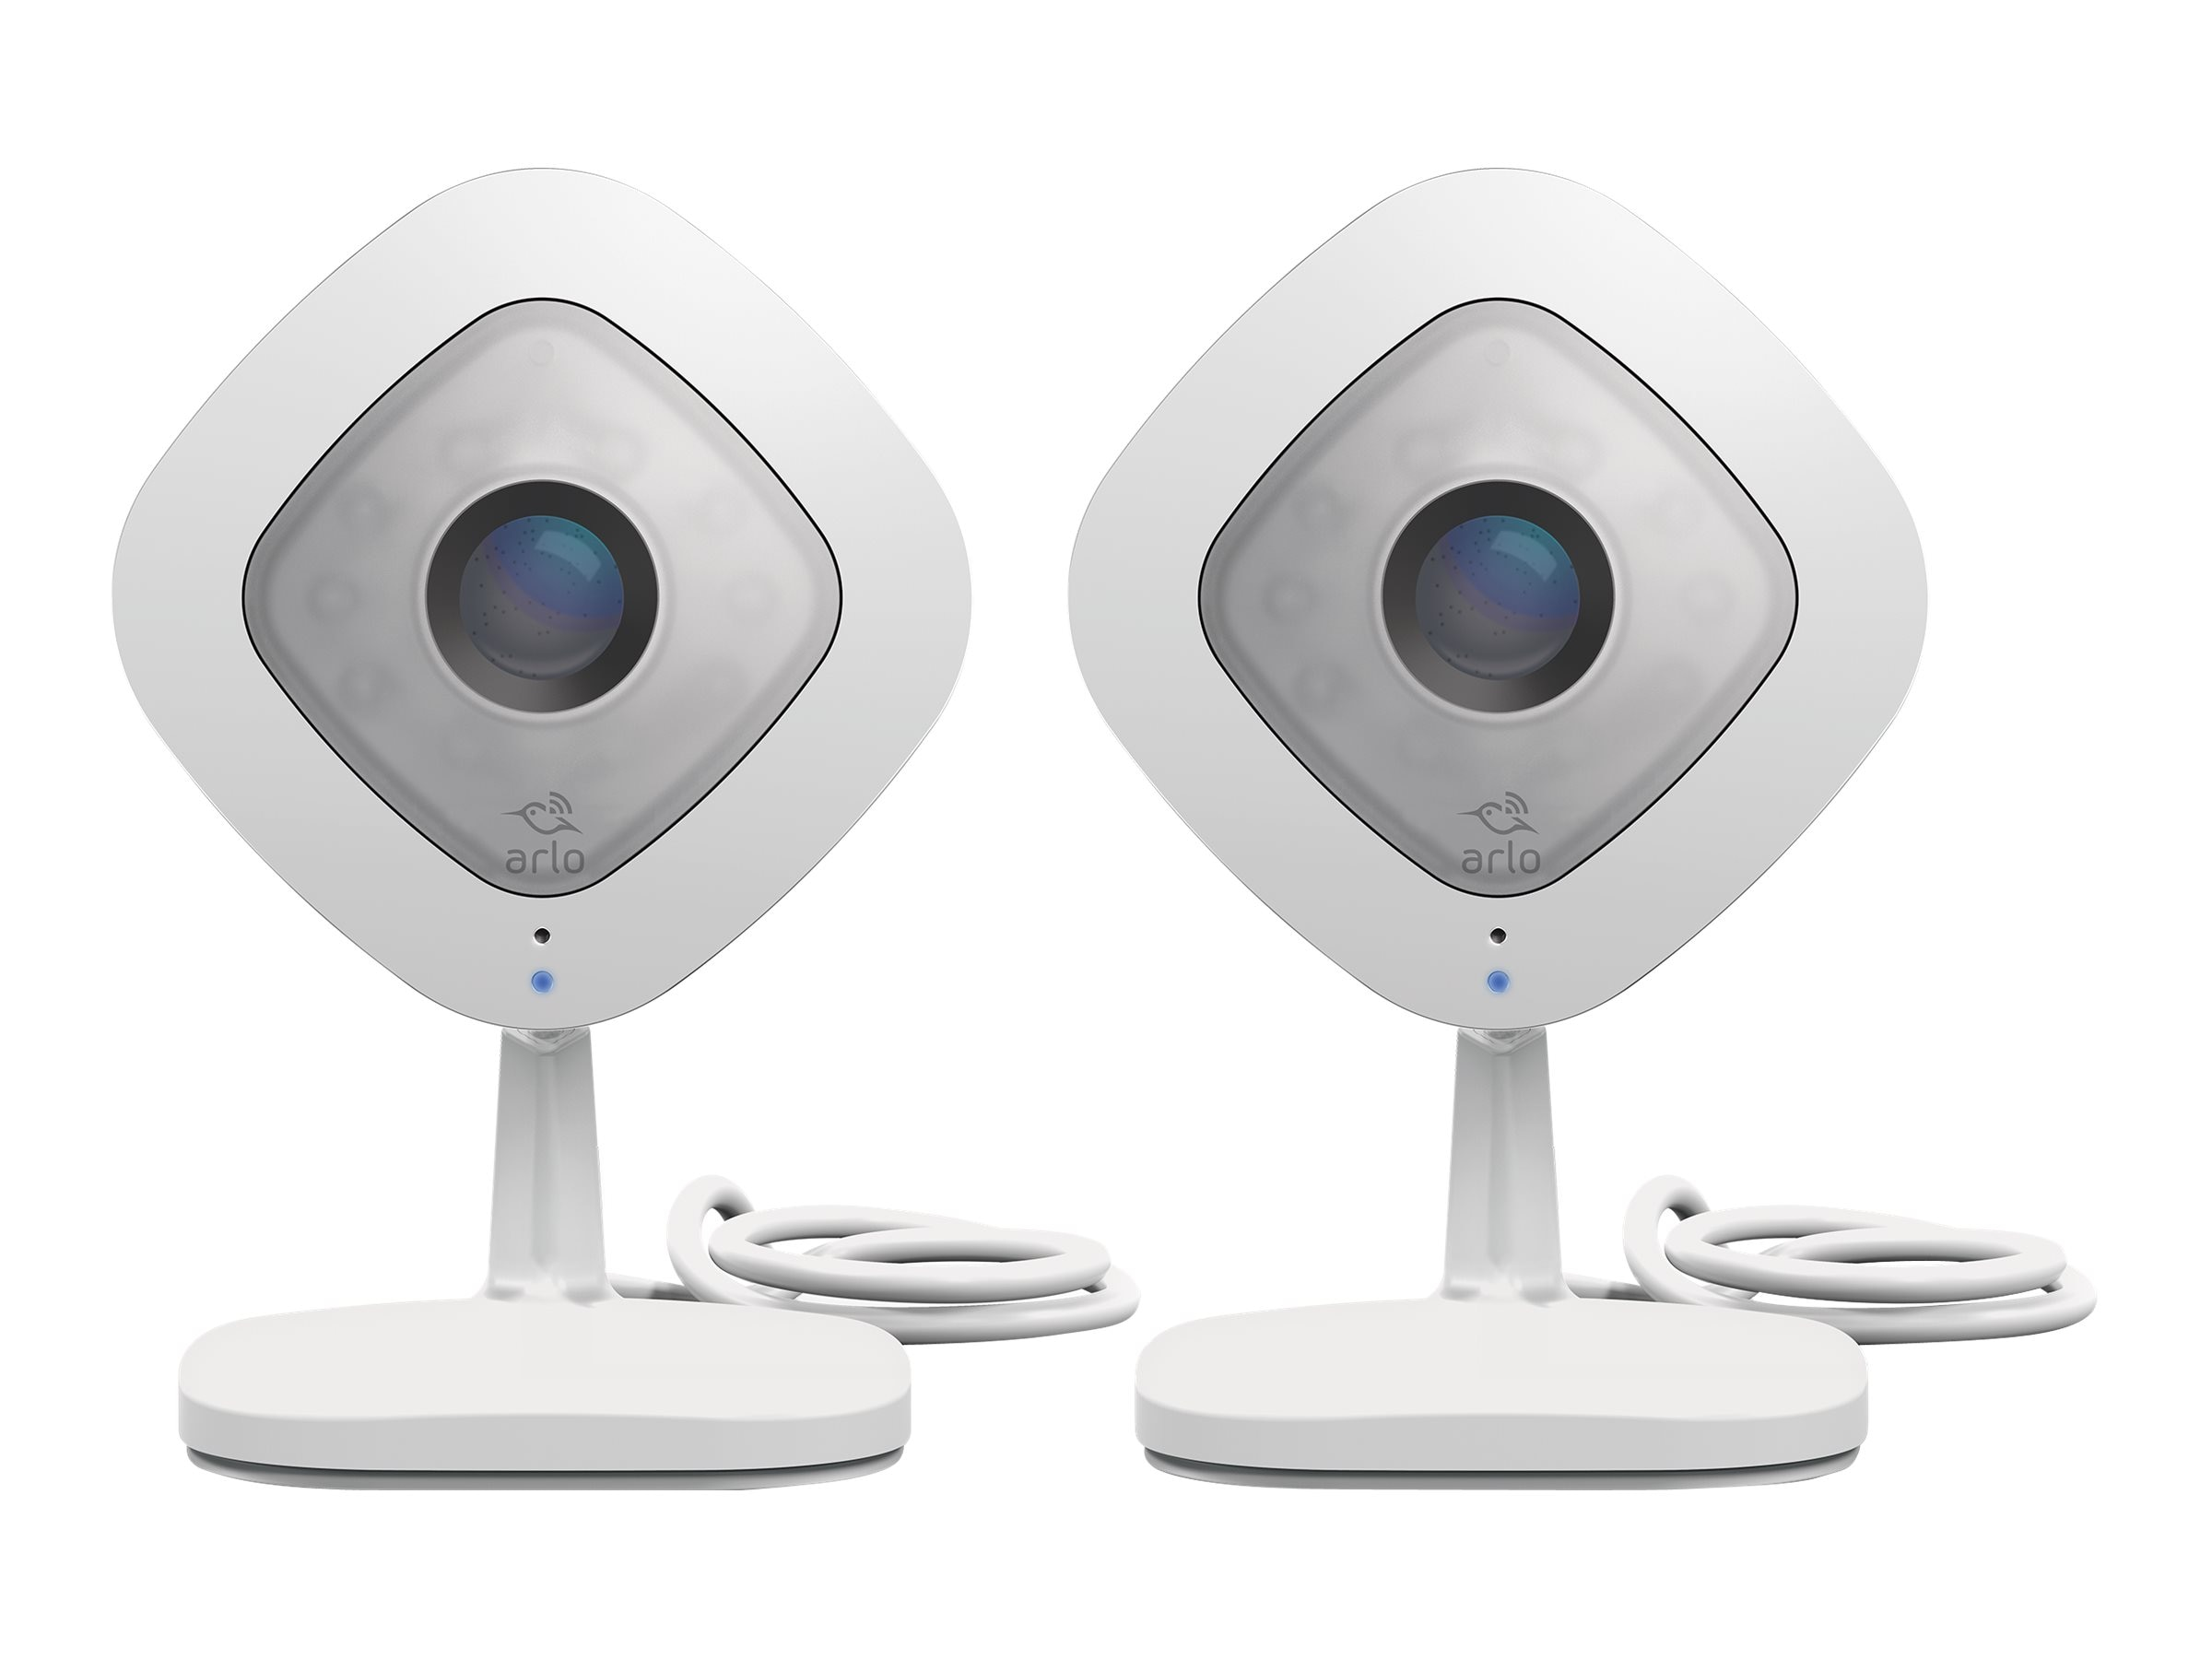 Netgear Arlo Q 1080p HD Security Camera, 2-Pack, VMC3240-100NAS